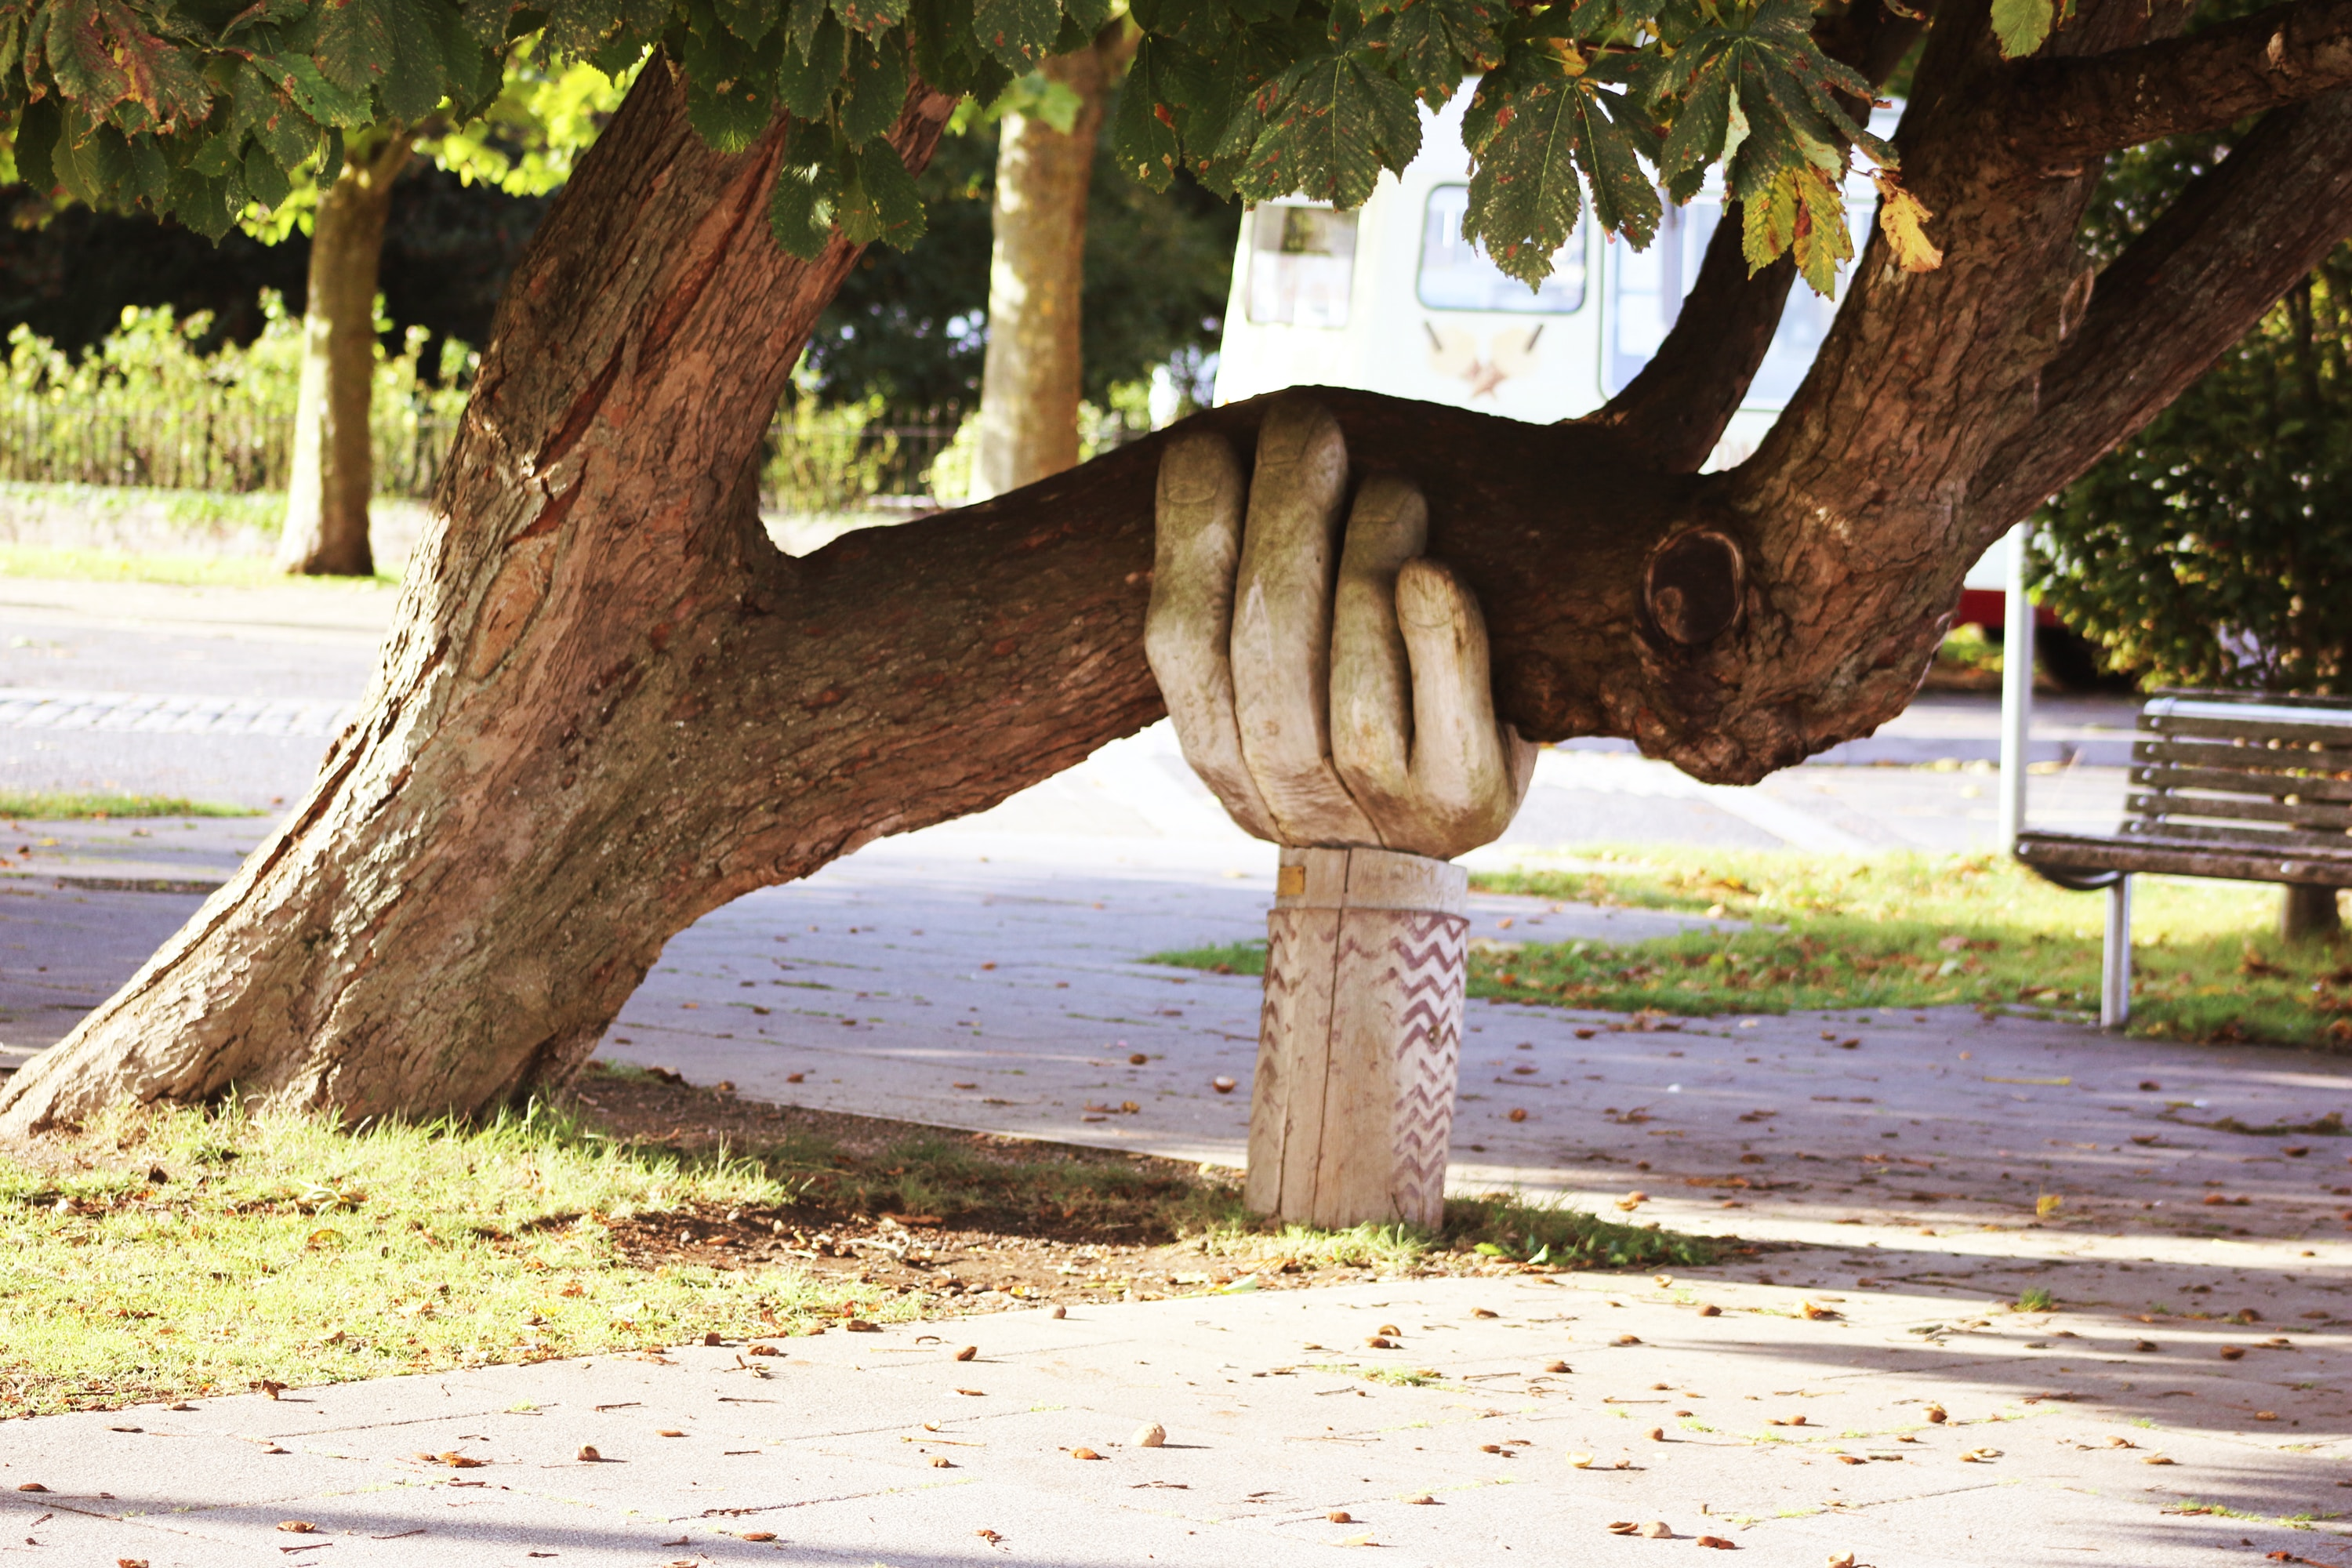 Tree held by a hand statue